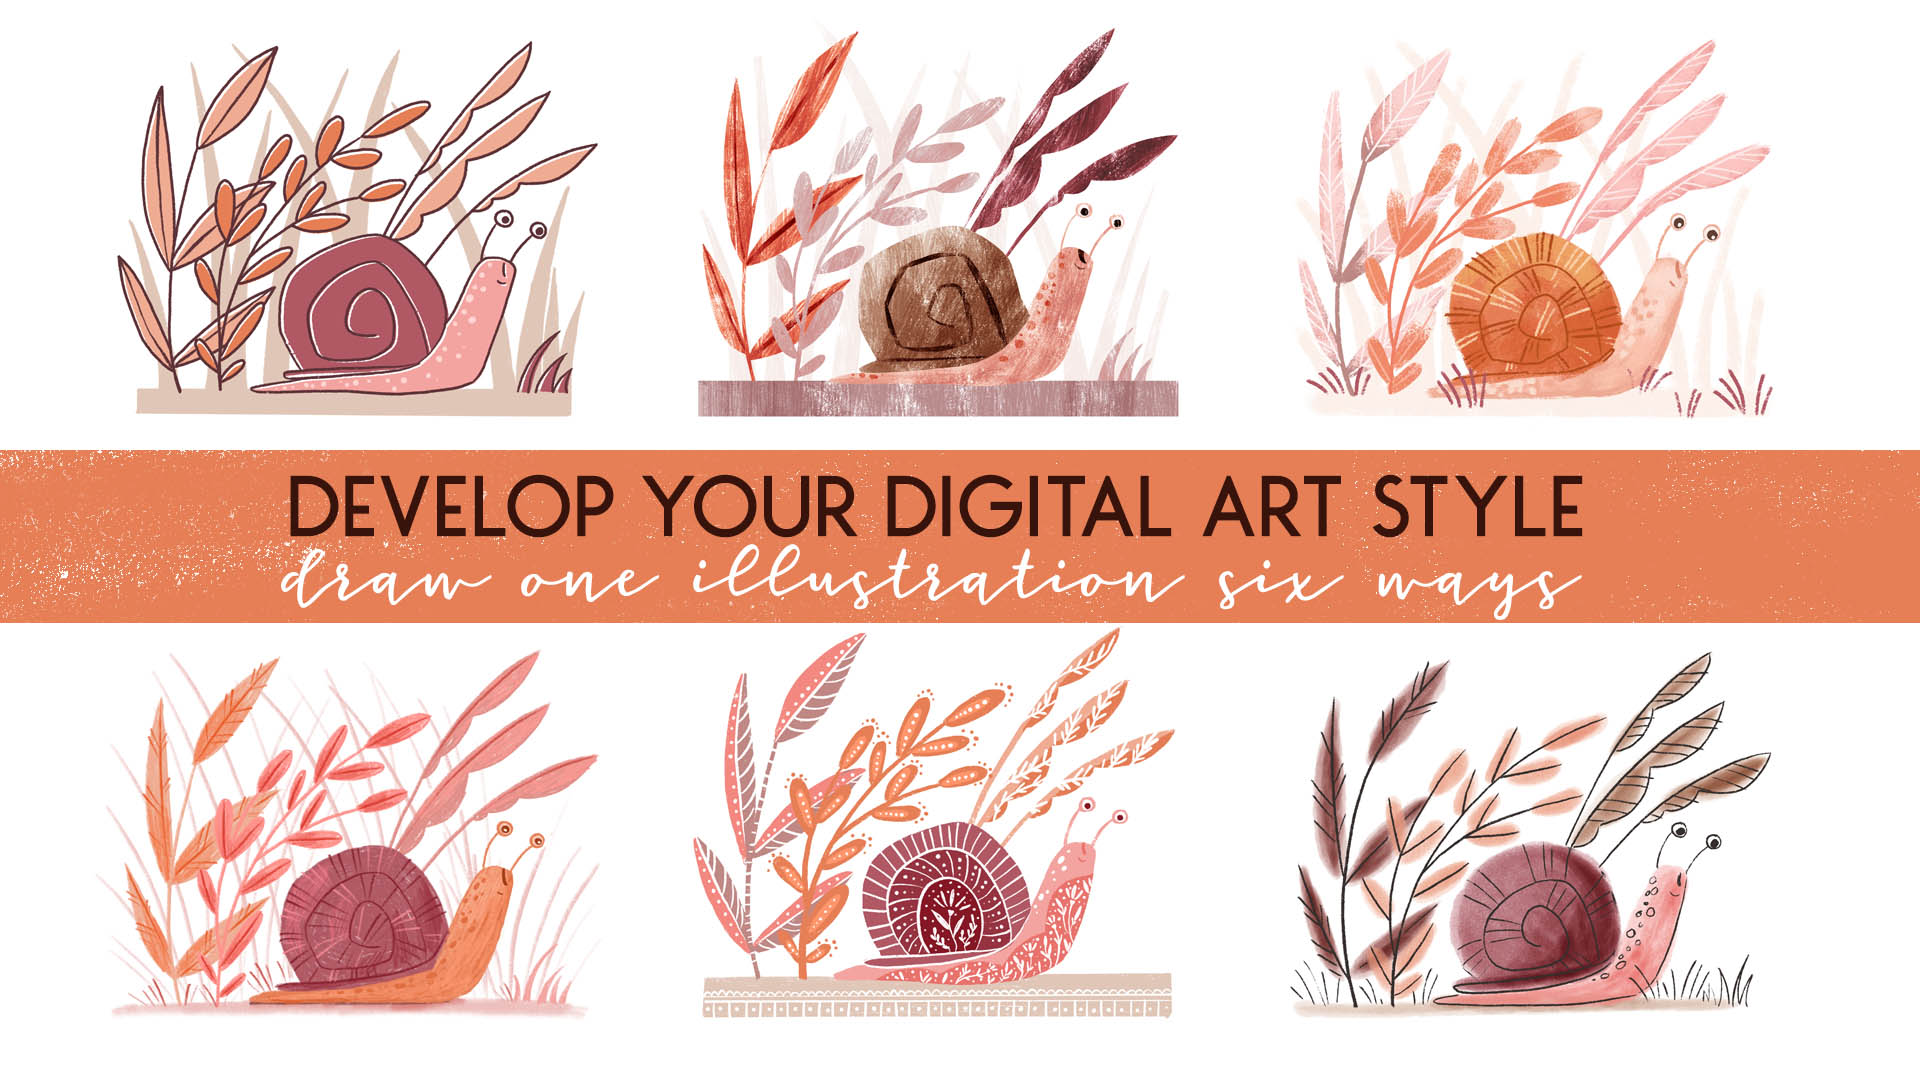 develop your style_cover image.jpg